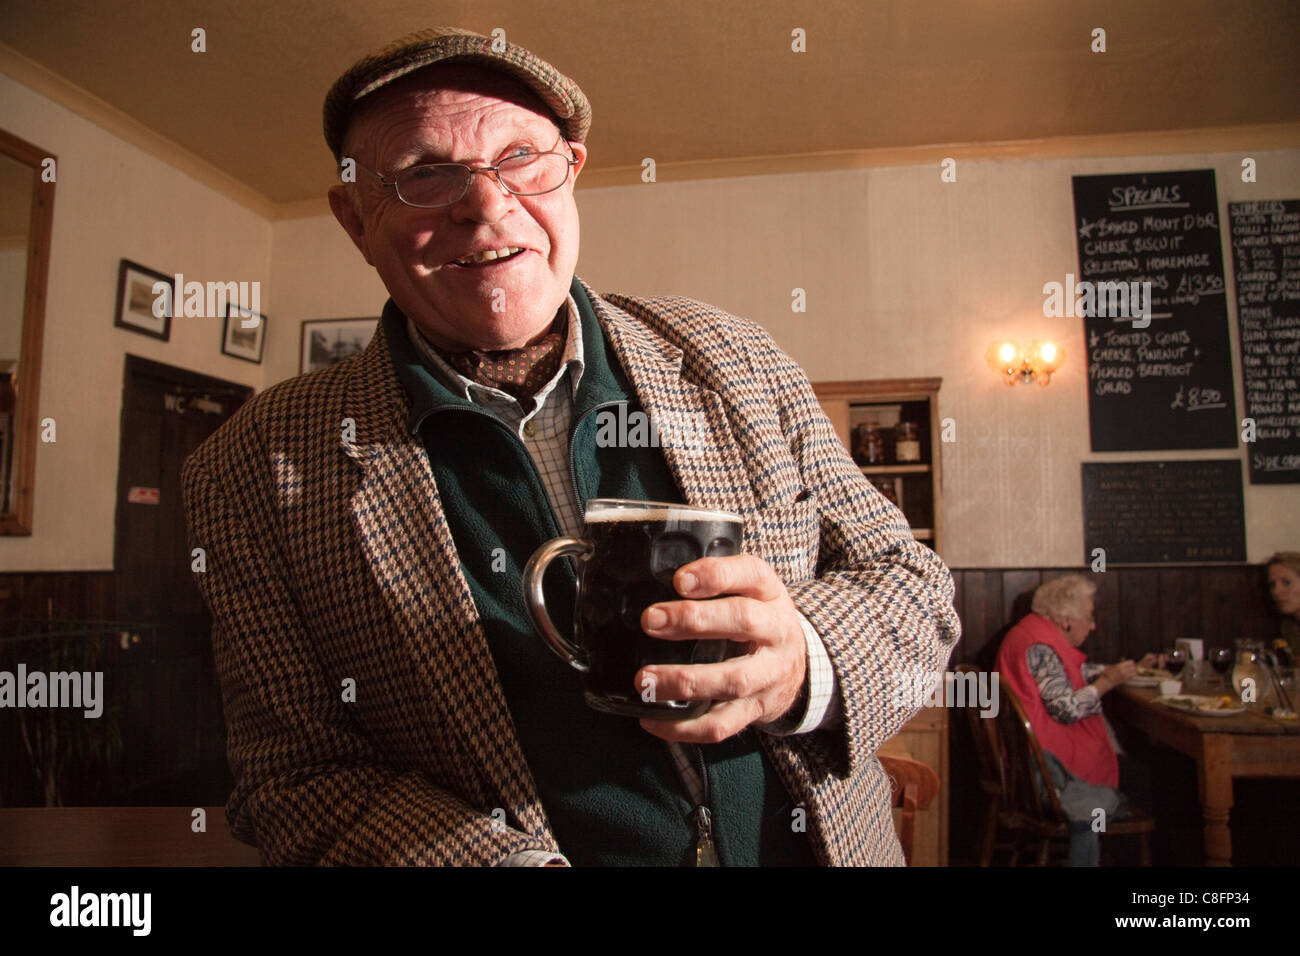 Suffolk raconteur, comedian and author Charlie Haylock having a pint of mild in a country pub. - Stock Image